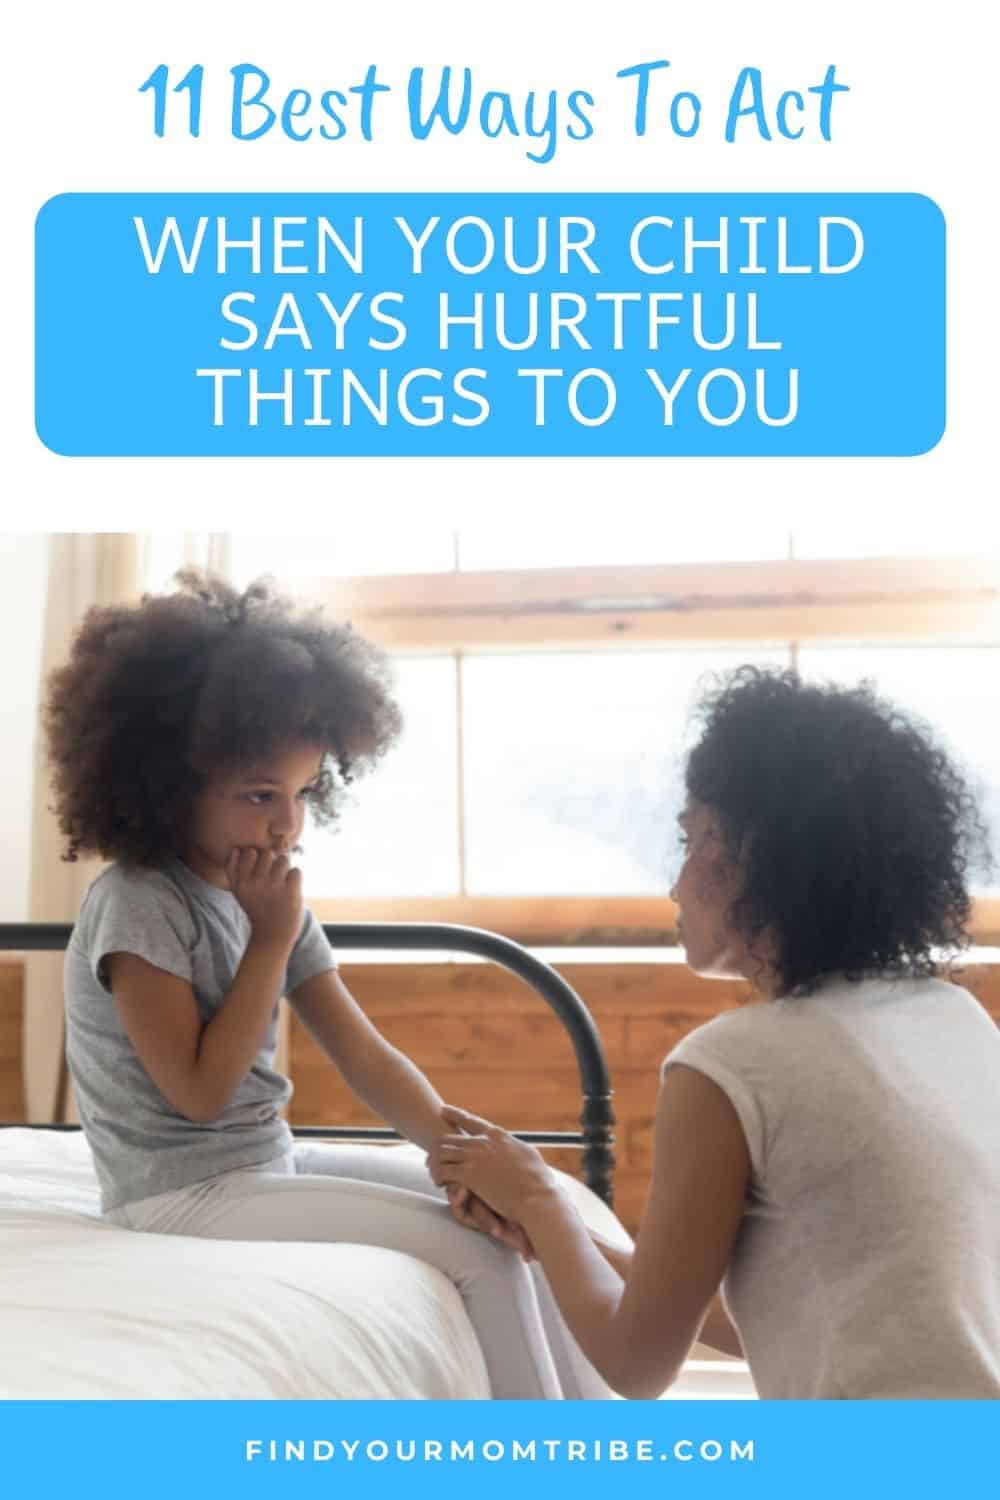 When Your Child Says Hurtful Things To You